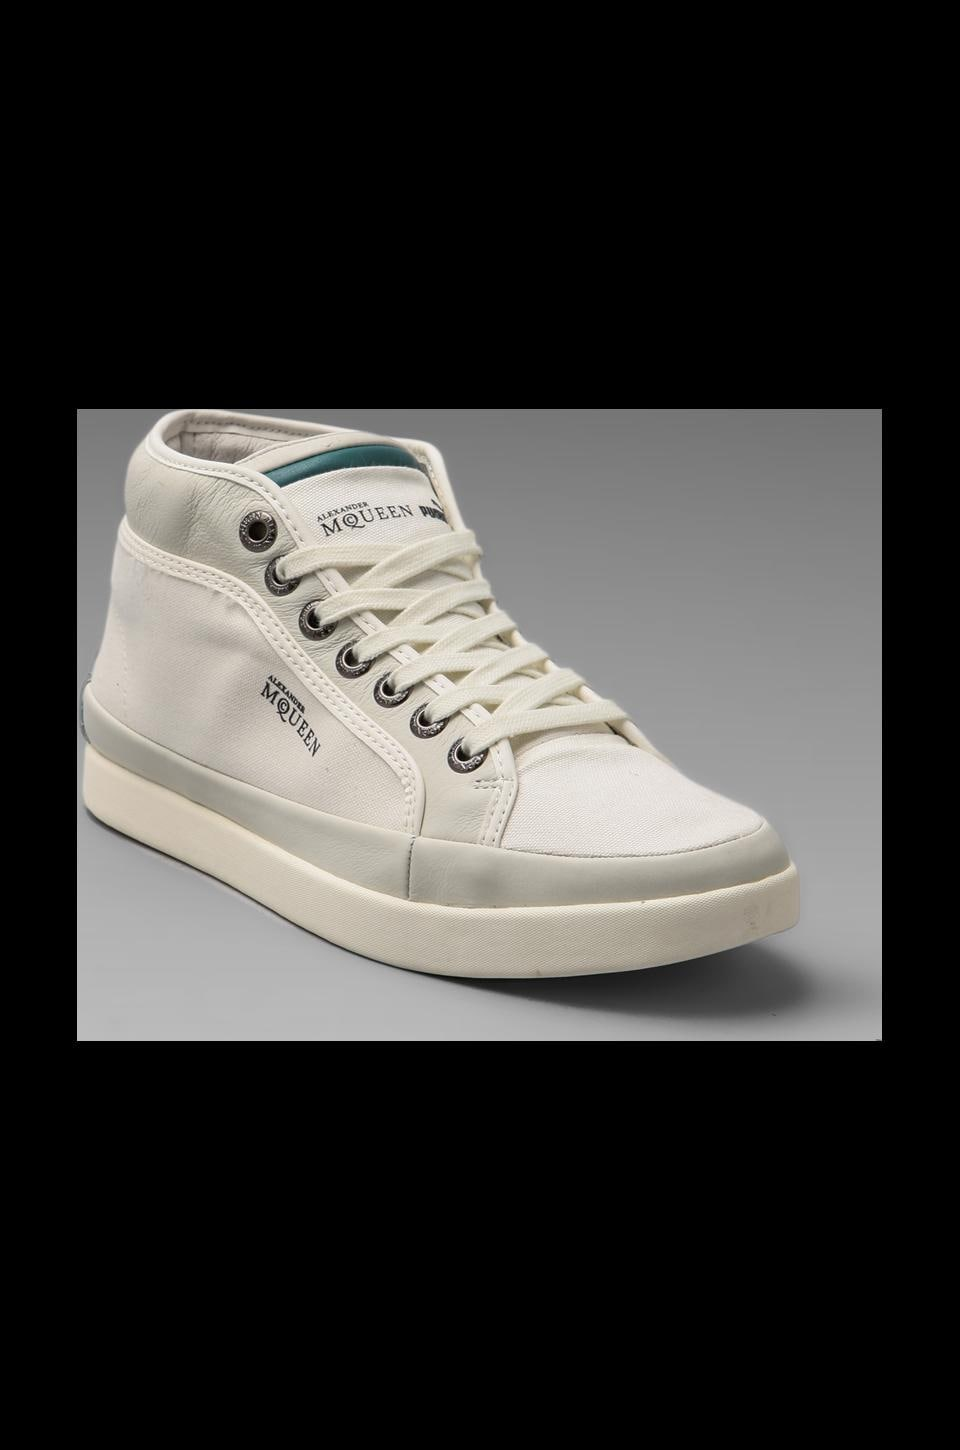 Alexander McQueen Puma Rabbie Mid in Bright White